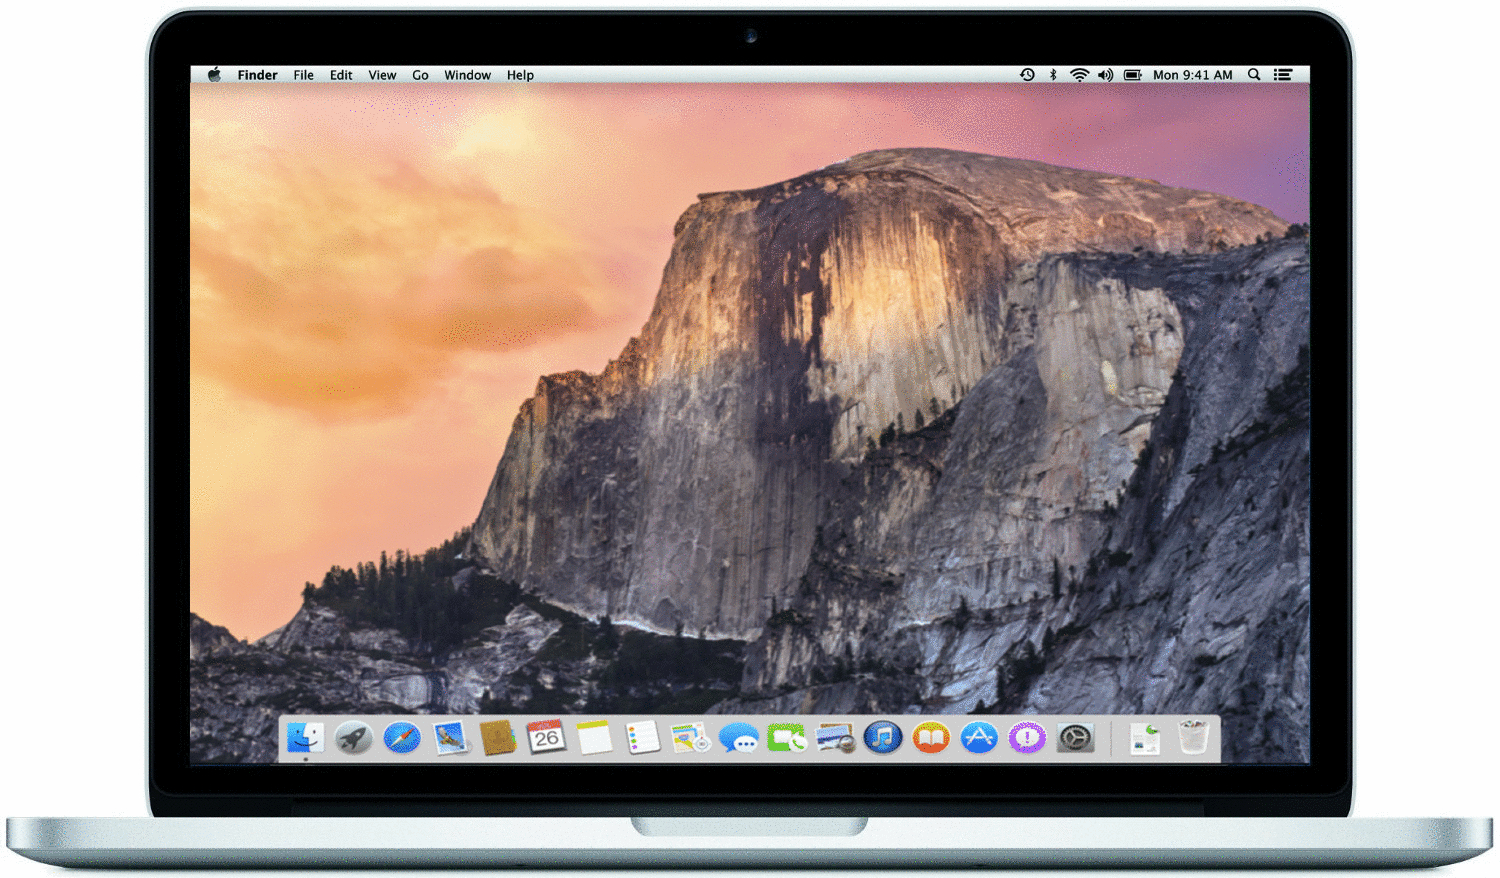 Apple MacBook Pro 15.4 (Retina Display) 2.5 GHz Intel Core i7 16 GB RAM 512 GB PCIe SSD [Mid 2015]